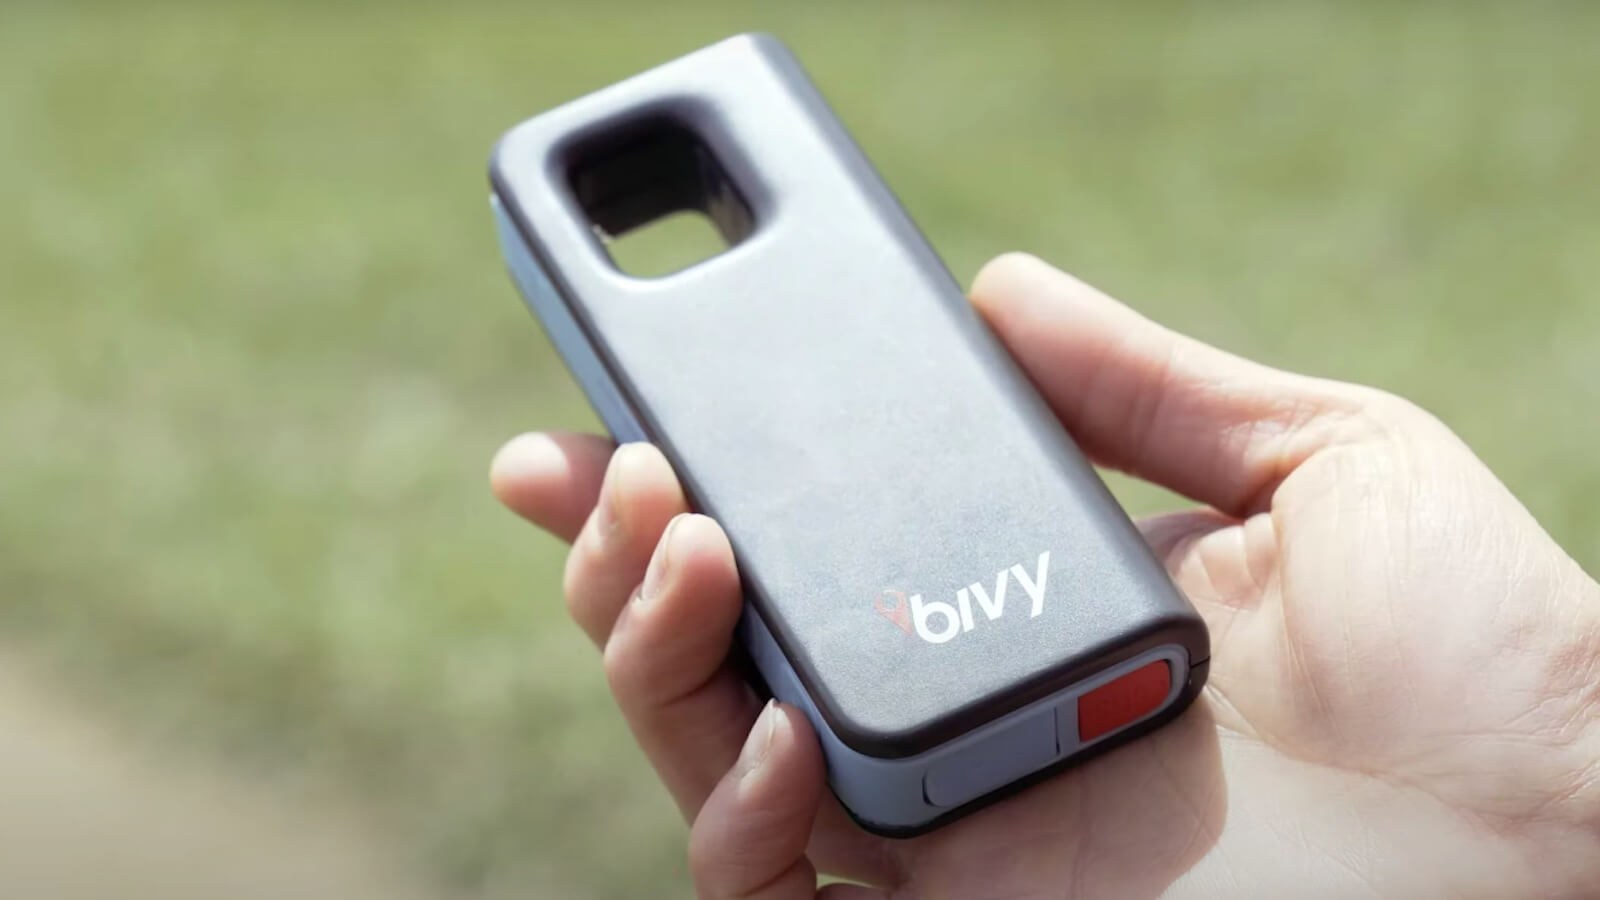 Bivy Stick Blue Satellite Communicator Device sends your location easily